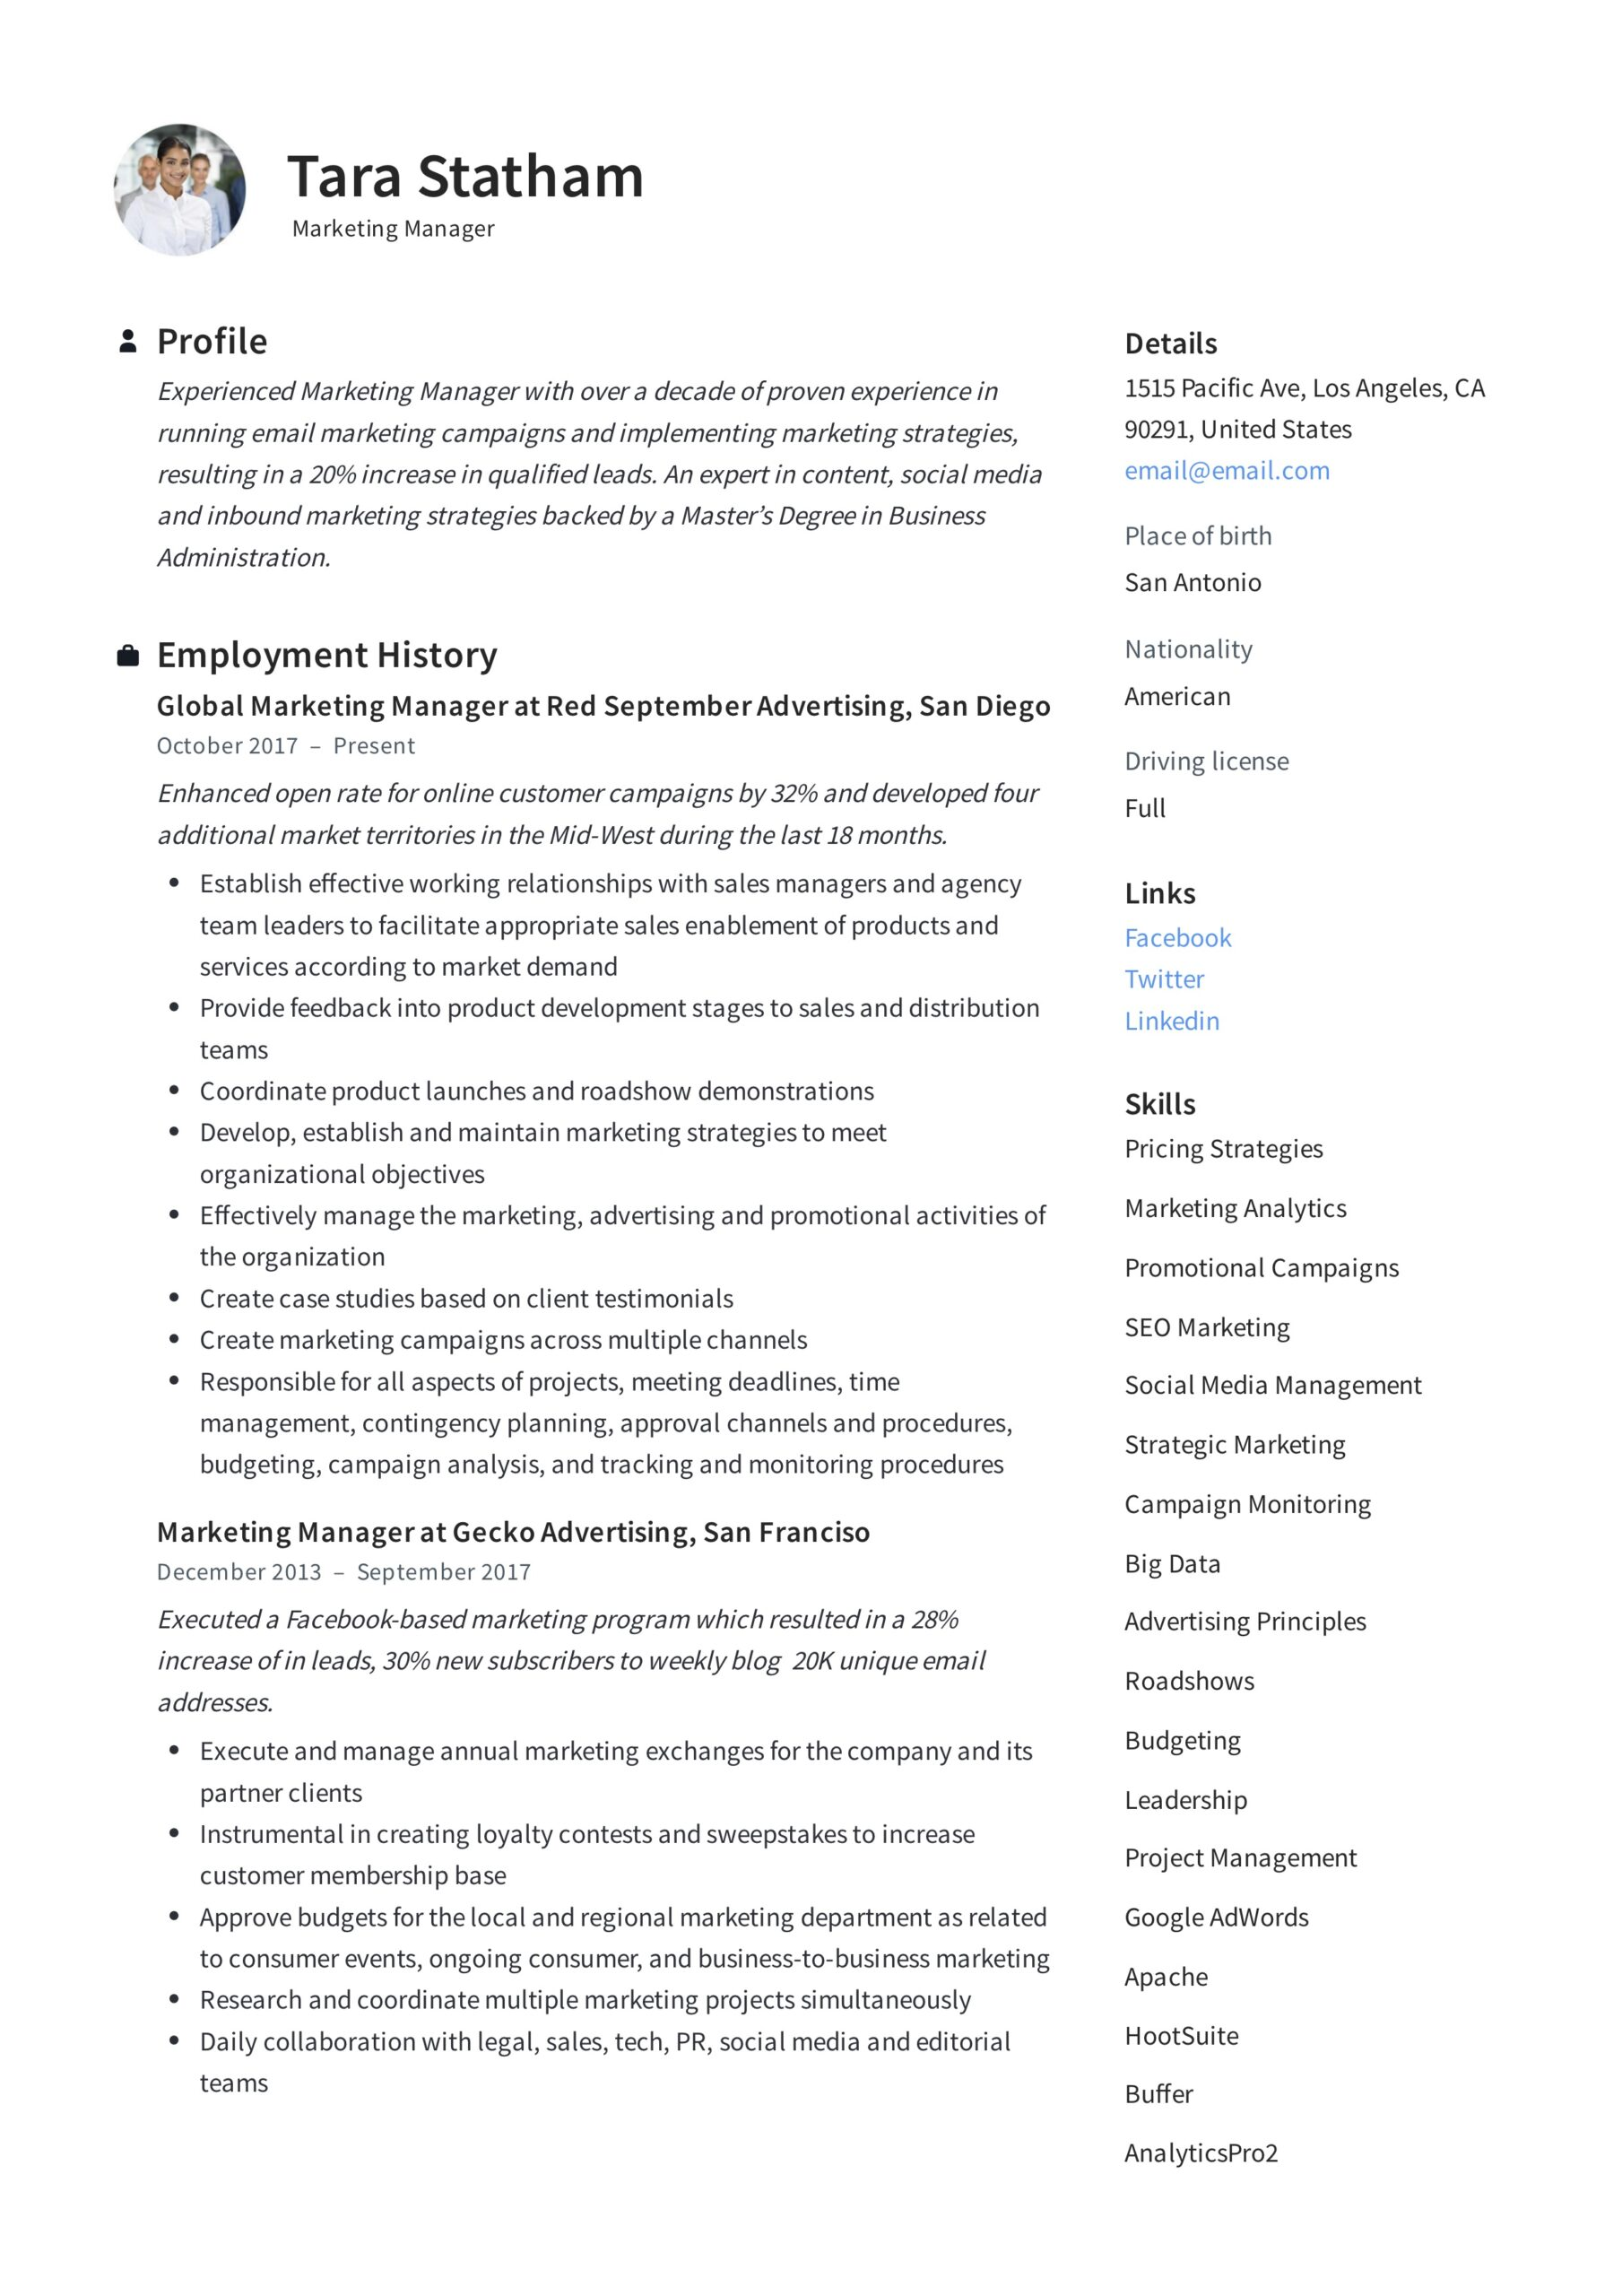 marketing manager resume writing guide templates skill set tara statham dental school Resume Marketing Skill Set Resume